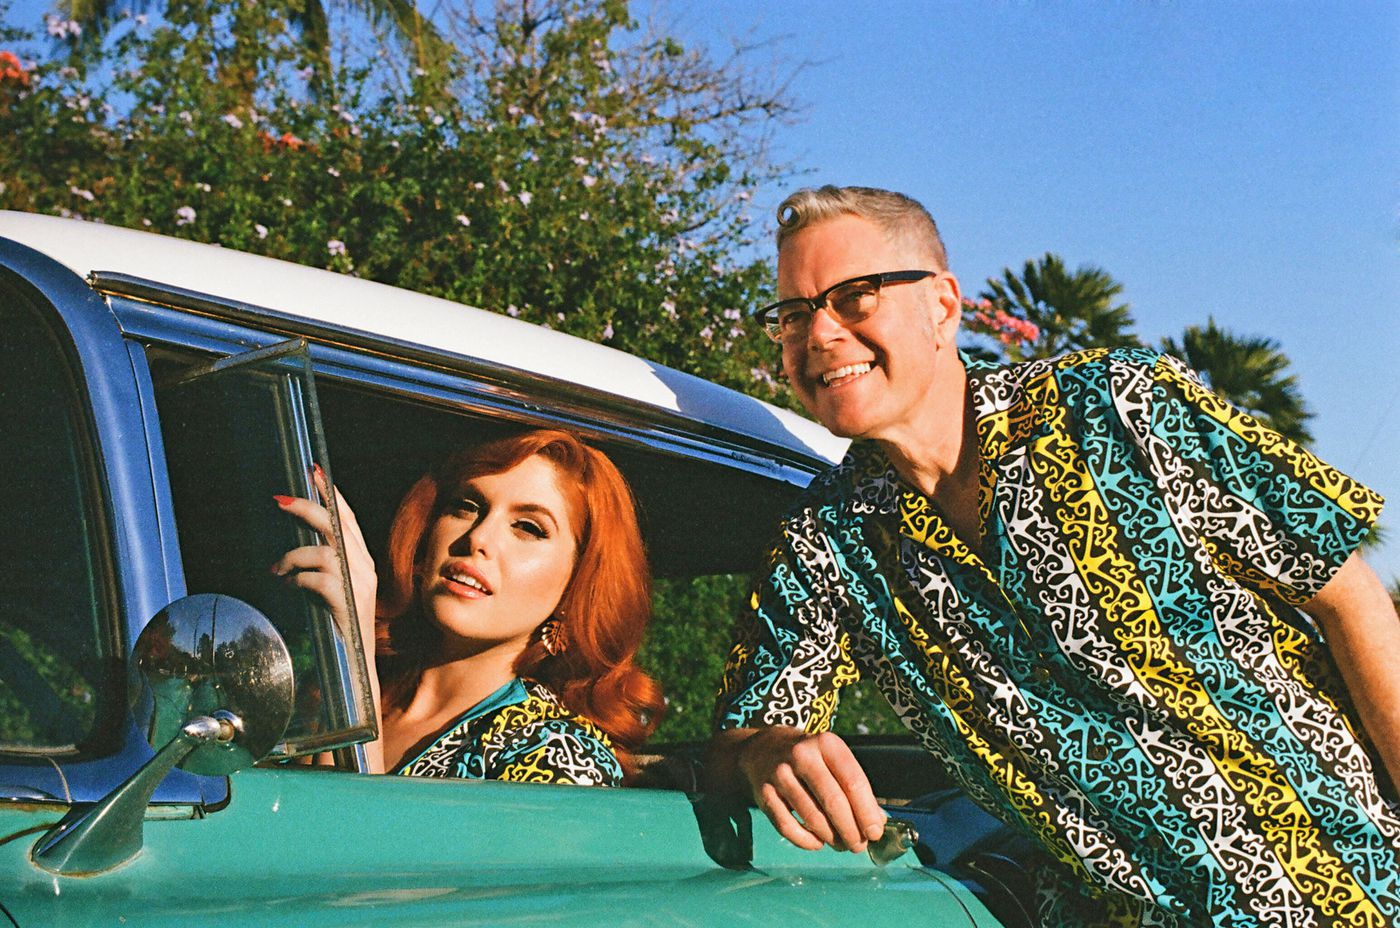 Charles Phoenix, Pinup Girl Clothing partner on a capsule collection with '50s flair (Los Angeles Times)